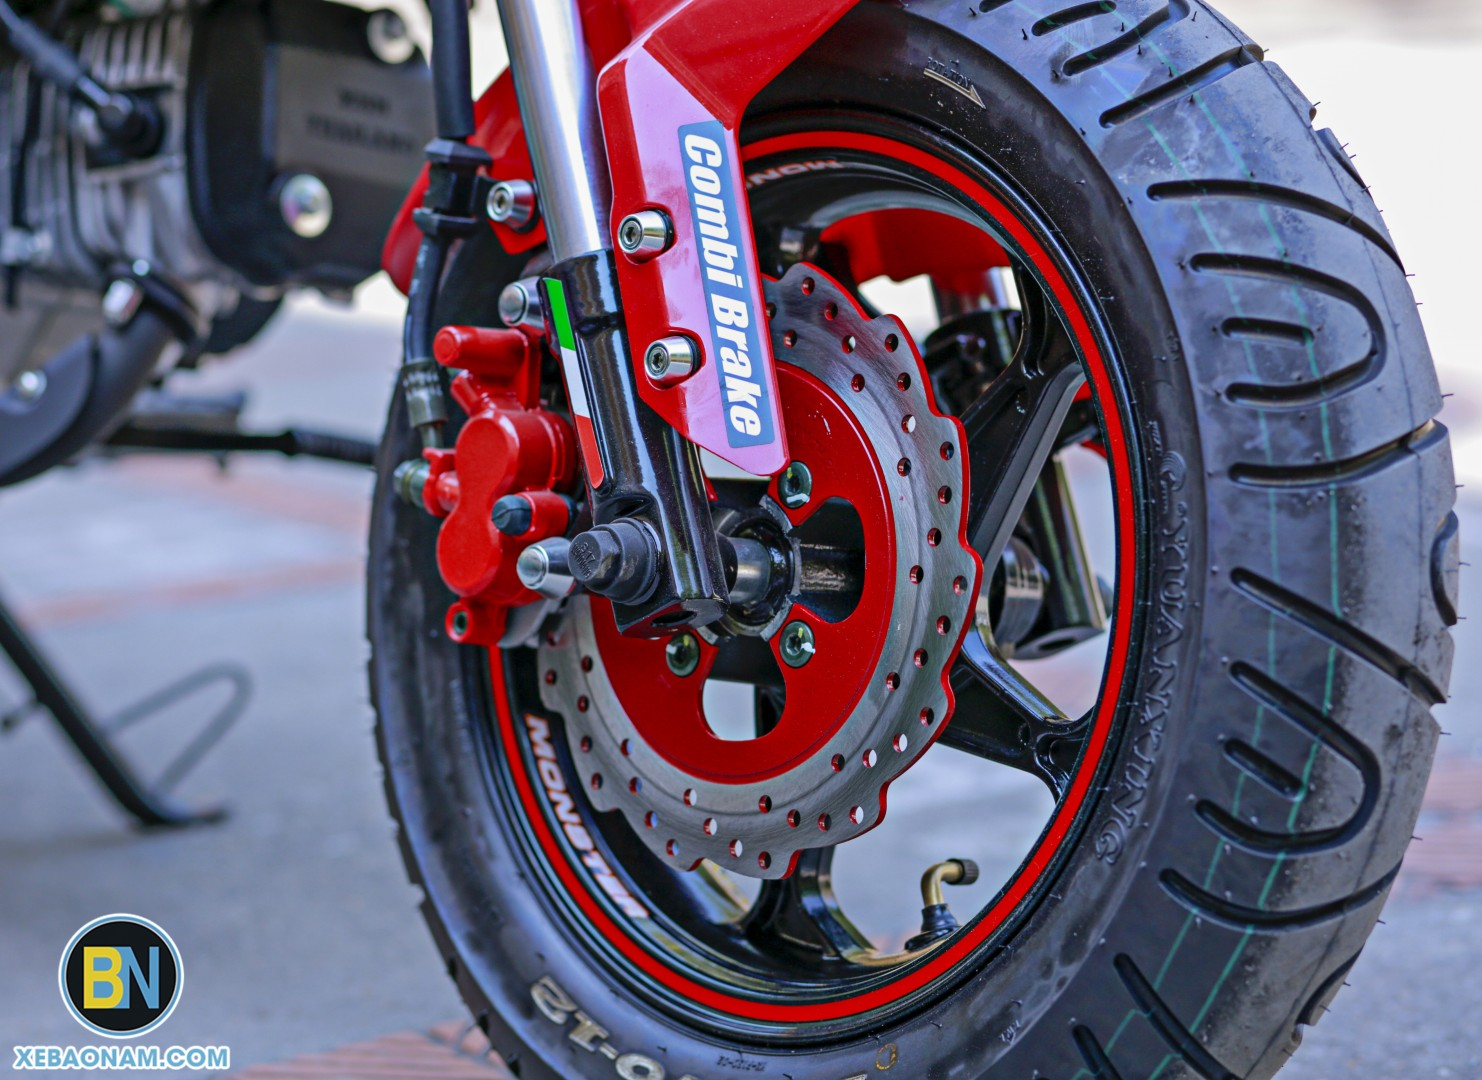 xe-may-ducati-mini-monster-110-xebaonam(13)